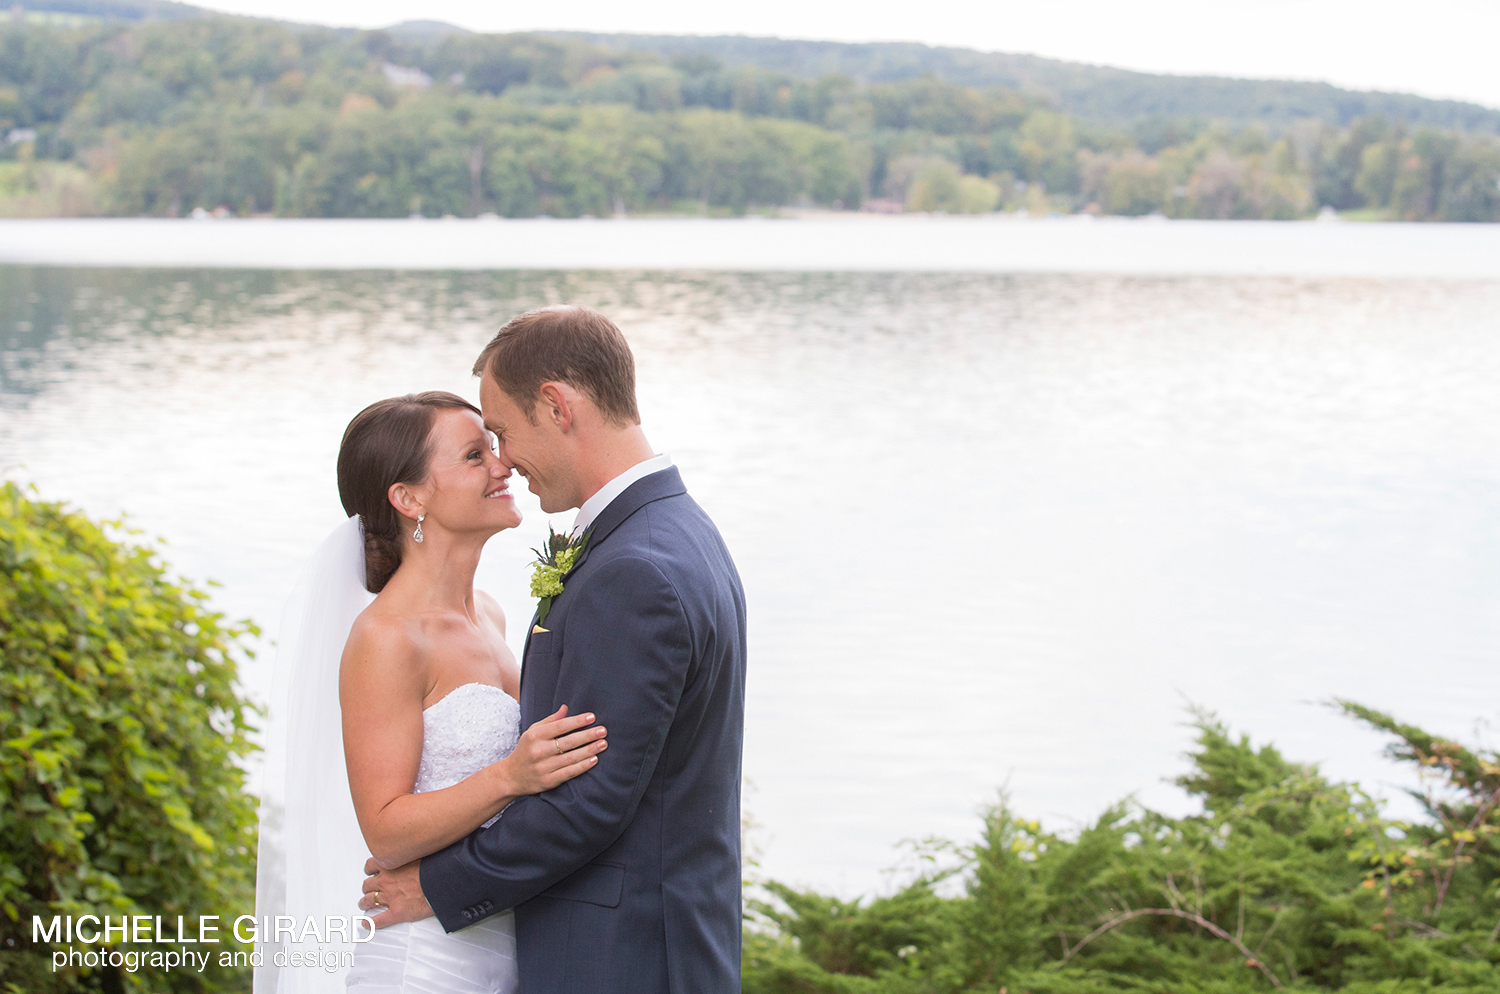 InterlakenInnWedding_LakevilleCT_MichelleGirardPhotography_005.jpg